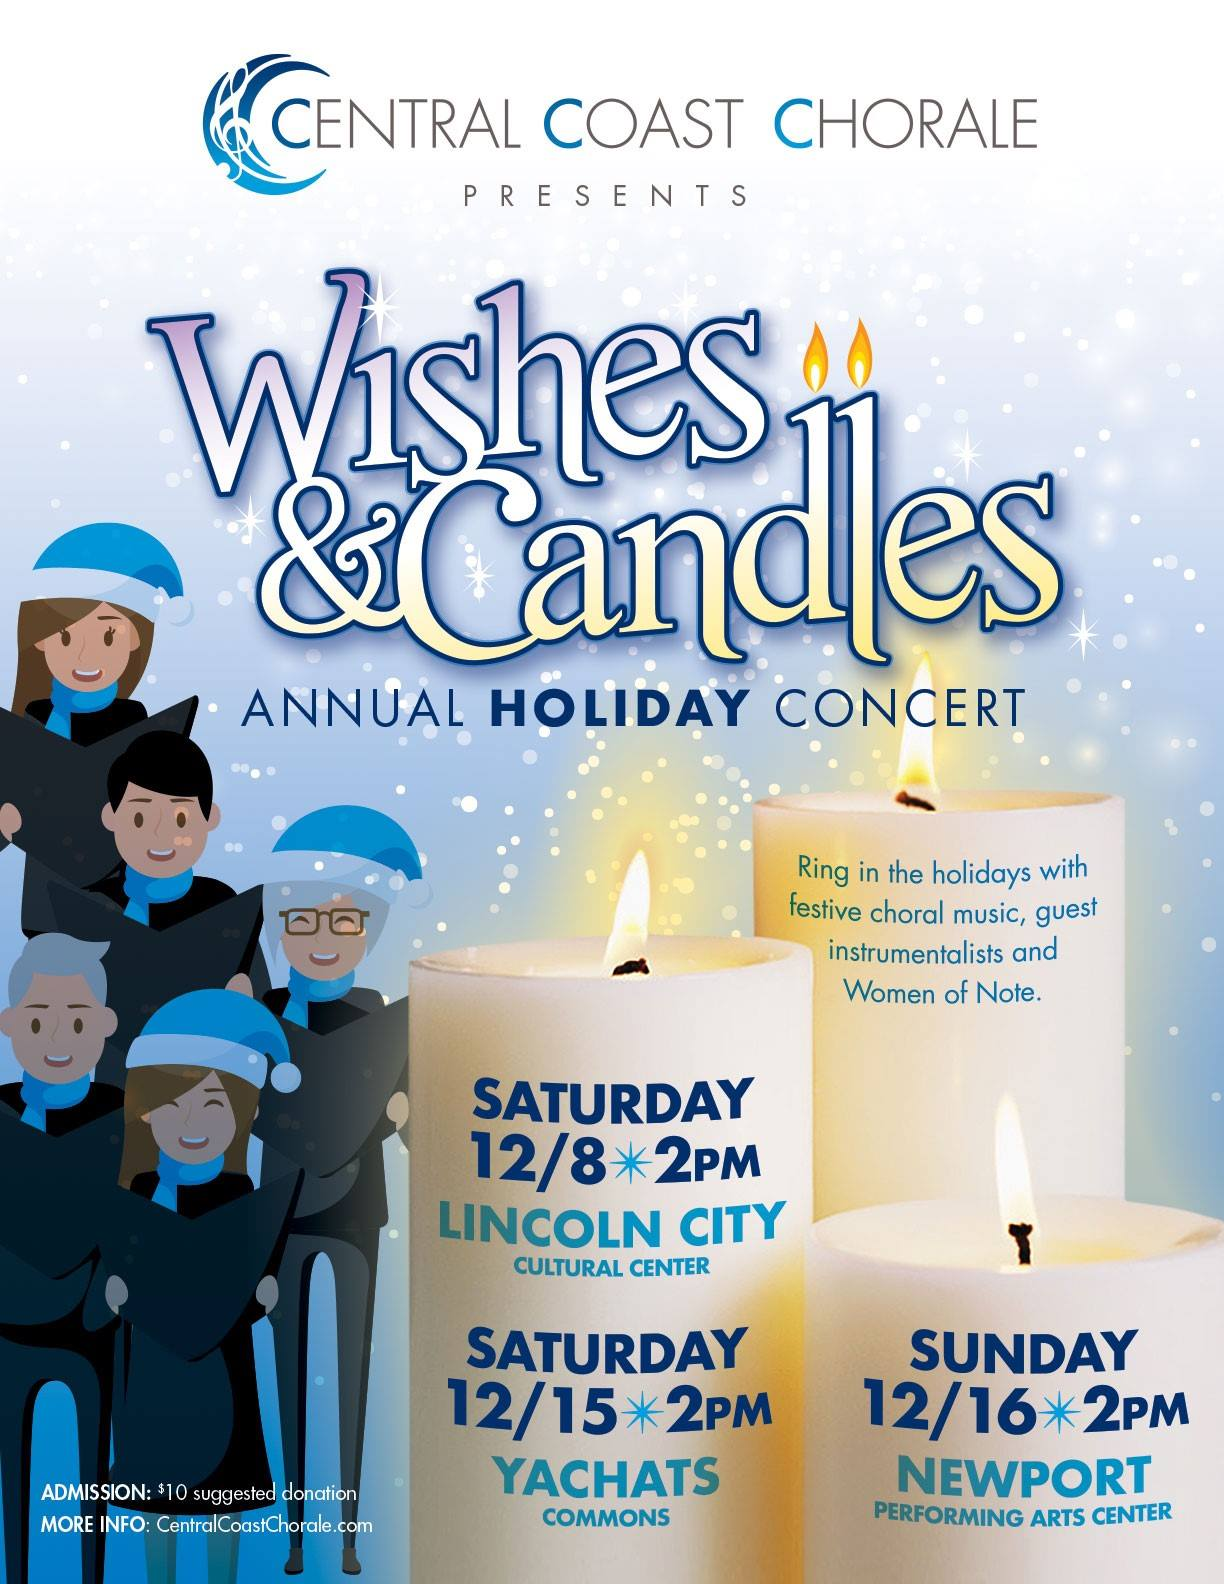 Wishes & Candles Annual Holiday Concert - Central Coast Chorale